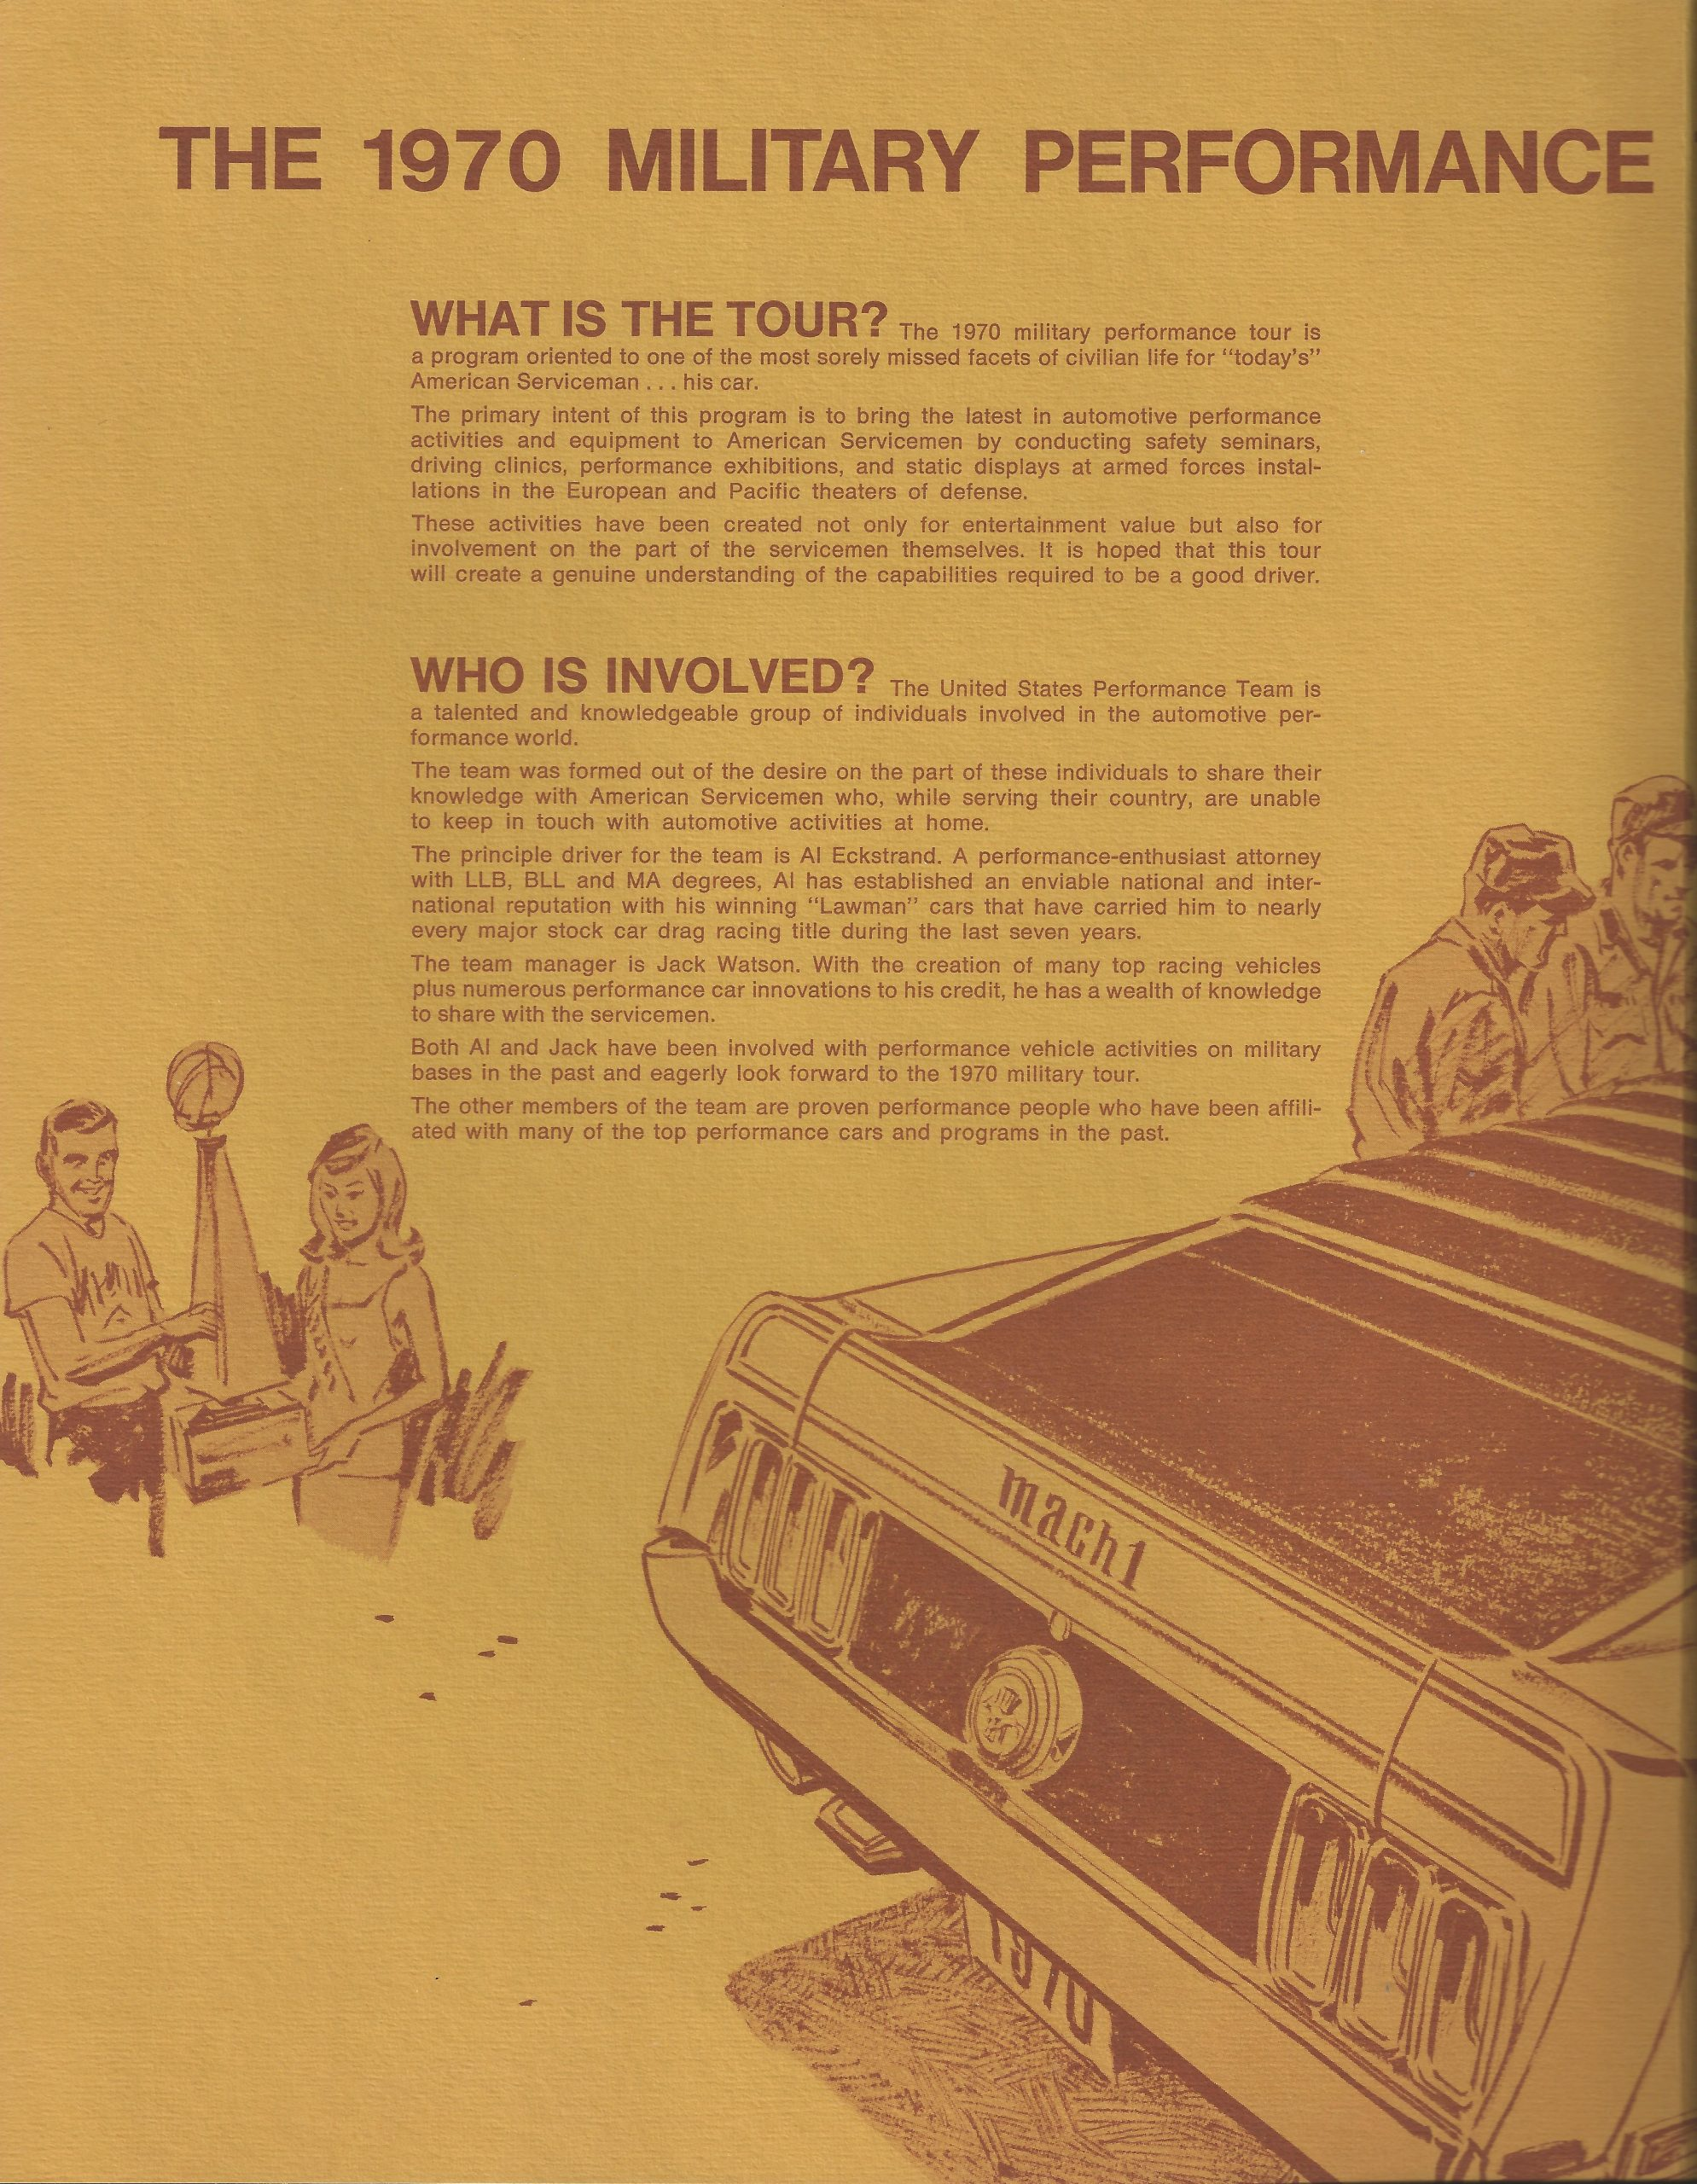 1970 Military Performance Tour literature what and who